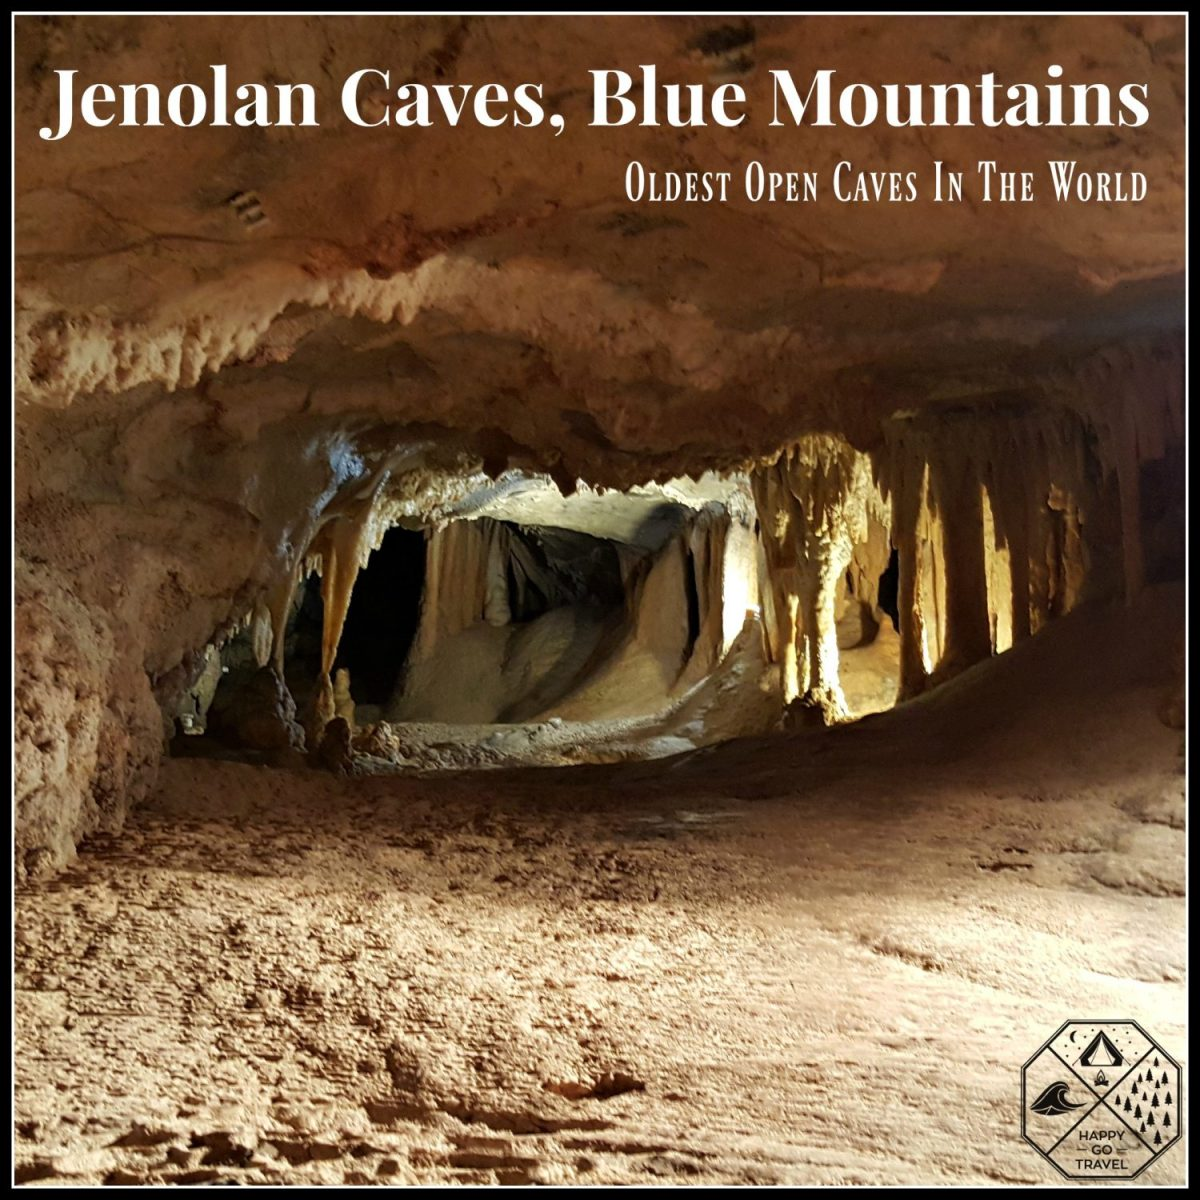 Jenolan Caves, Blue Mountains- World's Oldest Open Caves